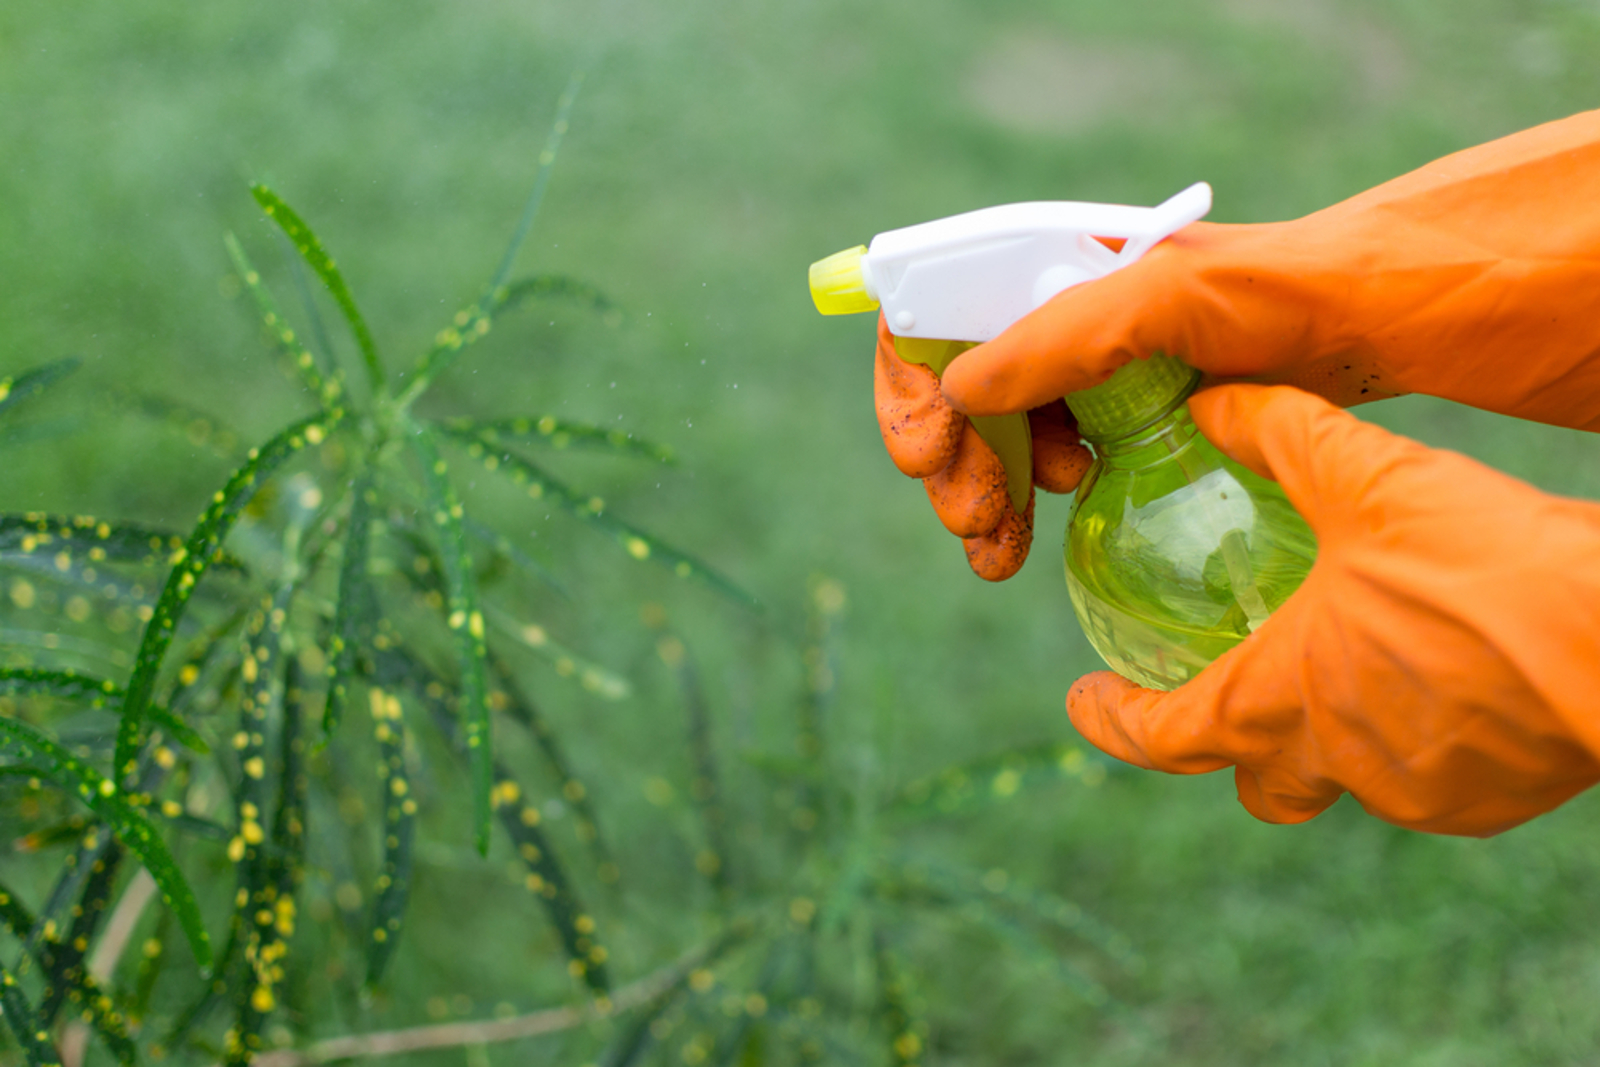 Three Chemical-Free Sprays for Repelling Pests in the Garden